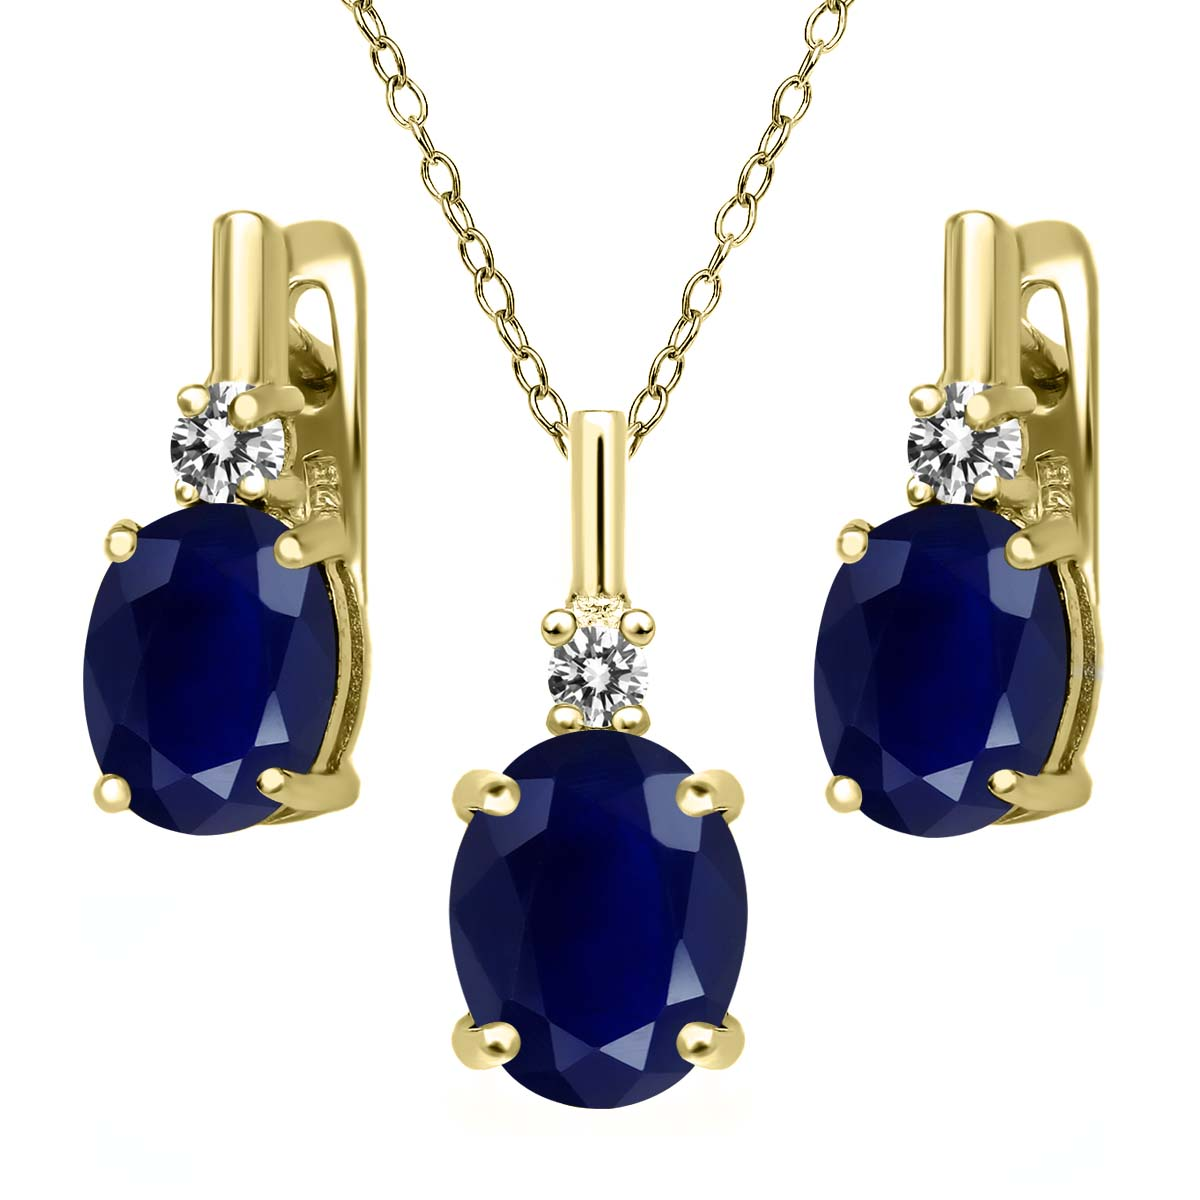 7.57 Ct Blue Sapphire White Diamond 18K Yellow Gold Plated Silver Pendant Earrings Set by